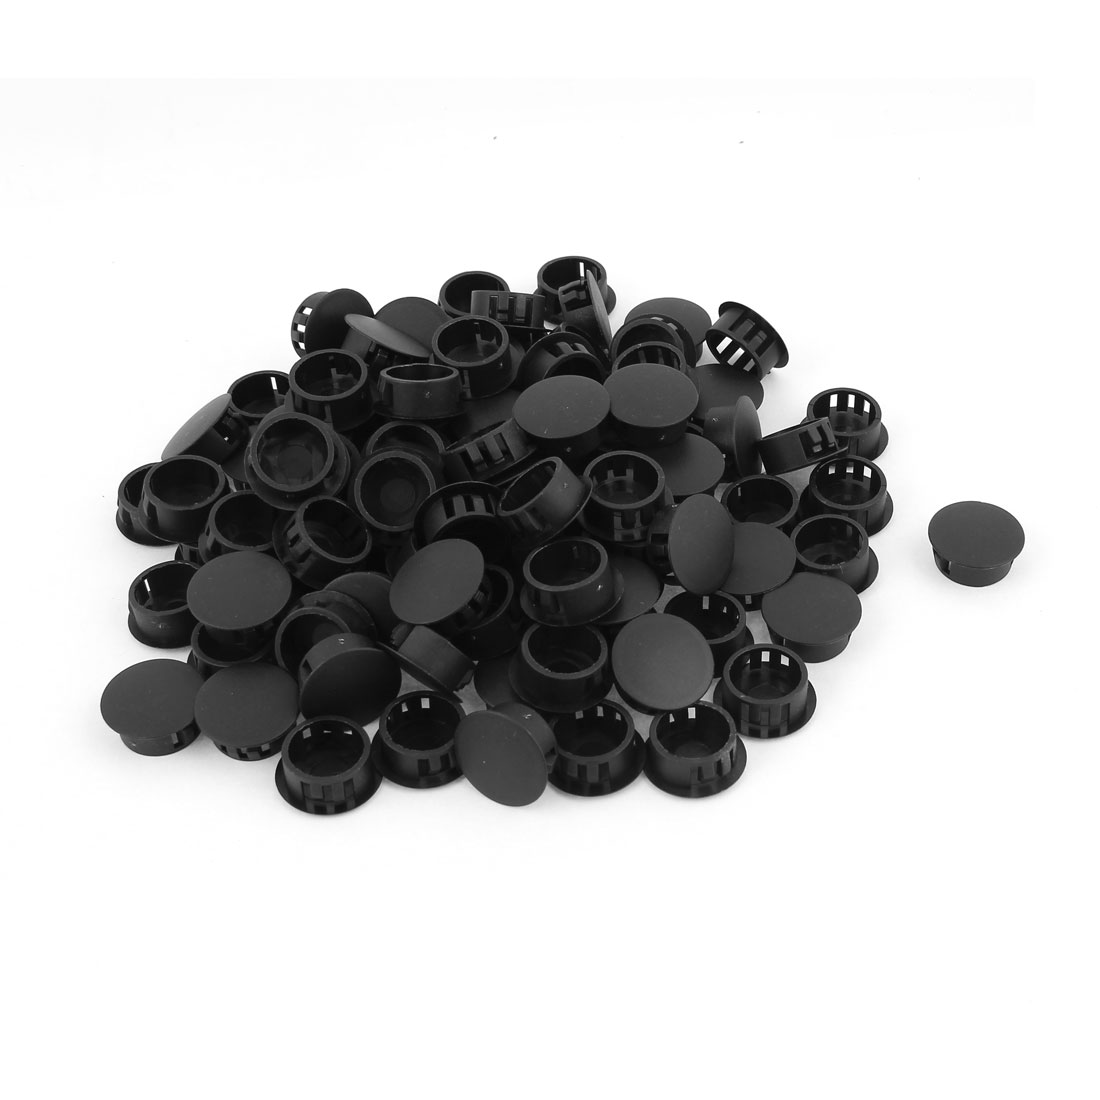 100 Pcs SKT-19 Black Snap in Nylon Locking Hole 19mm Dia